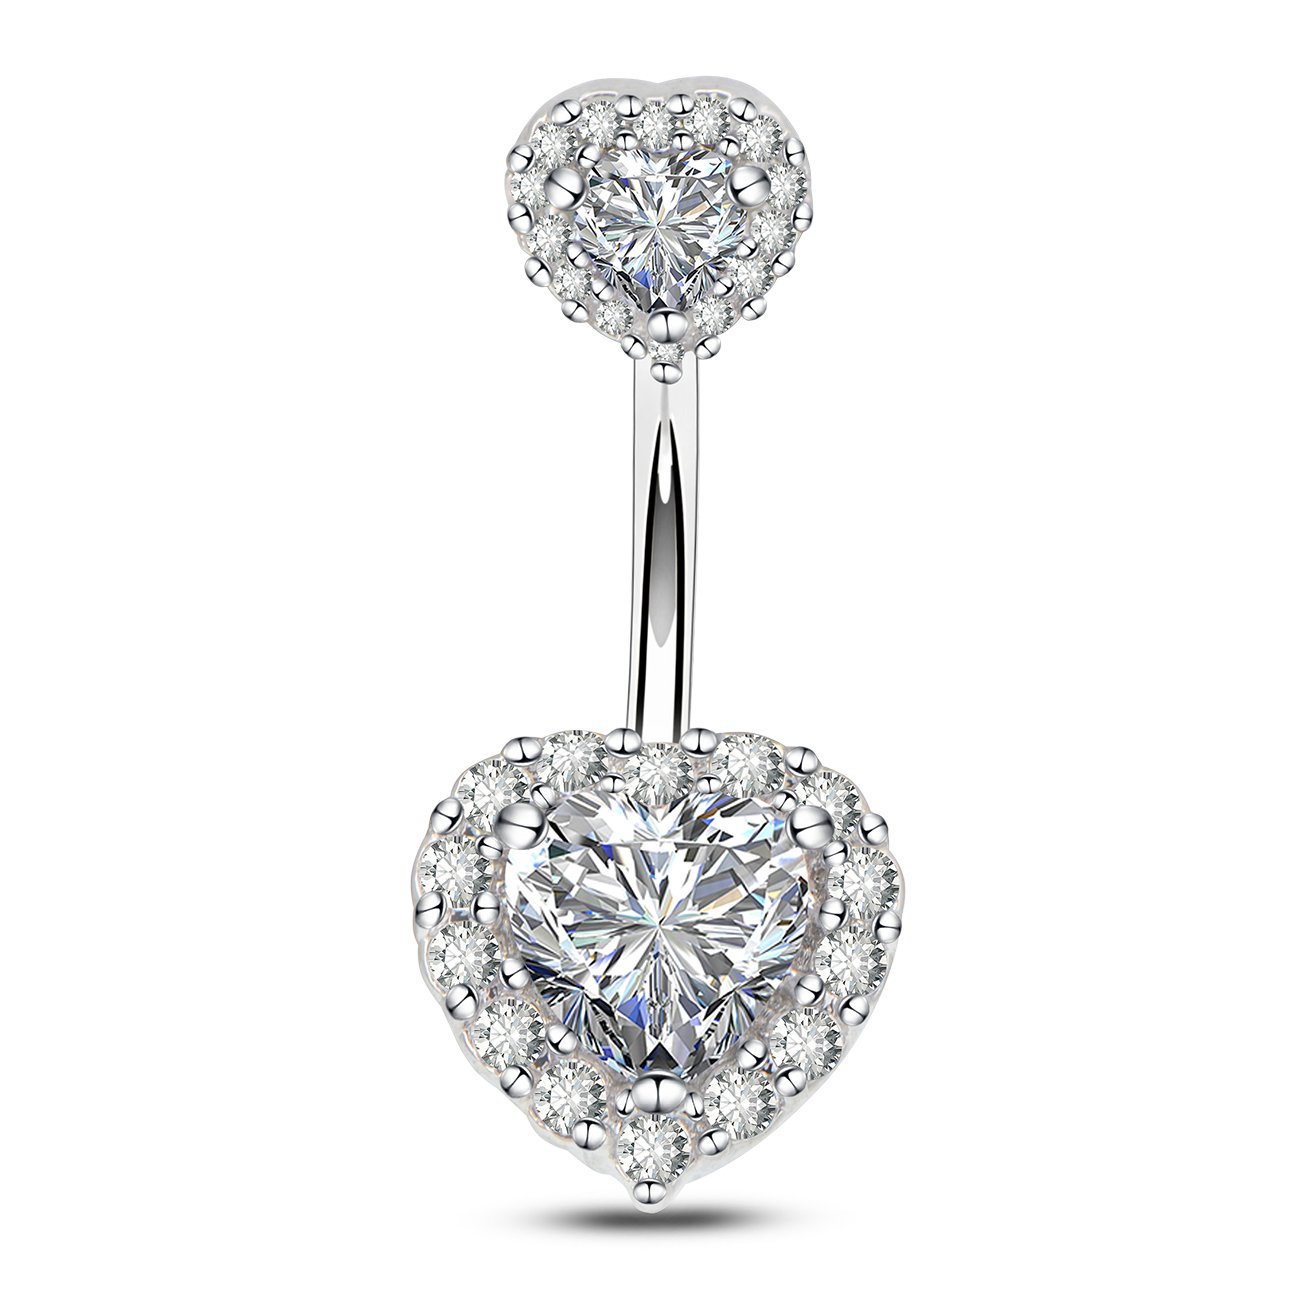 OUFER 14G Double Heart Cubic Zirconia Navel Belly Button Ring Surgical Steel Piercing Jewelry